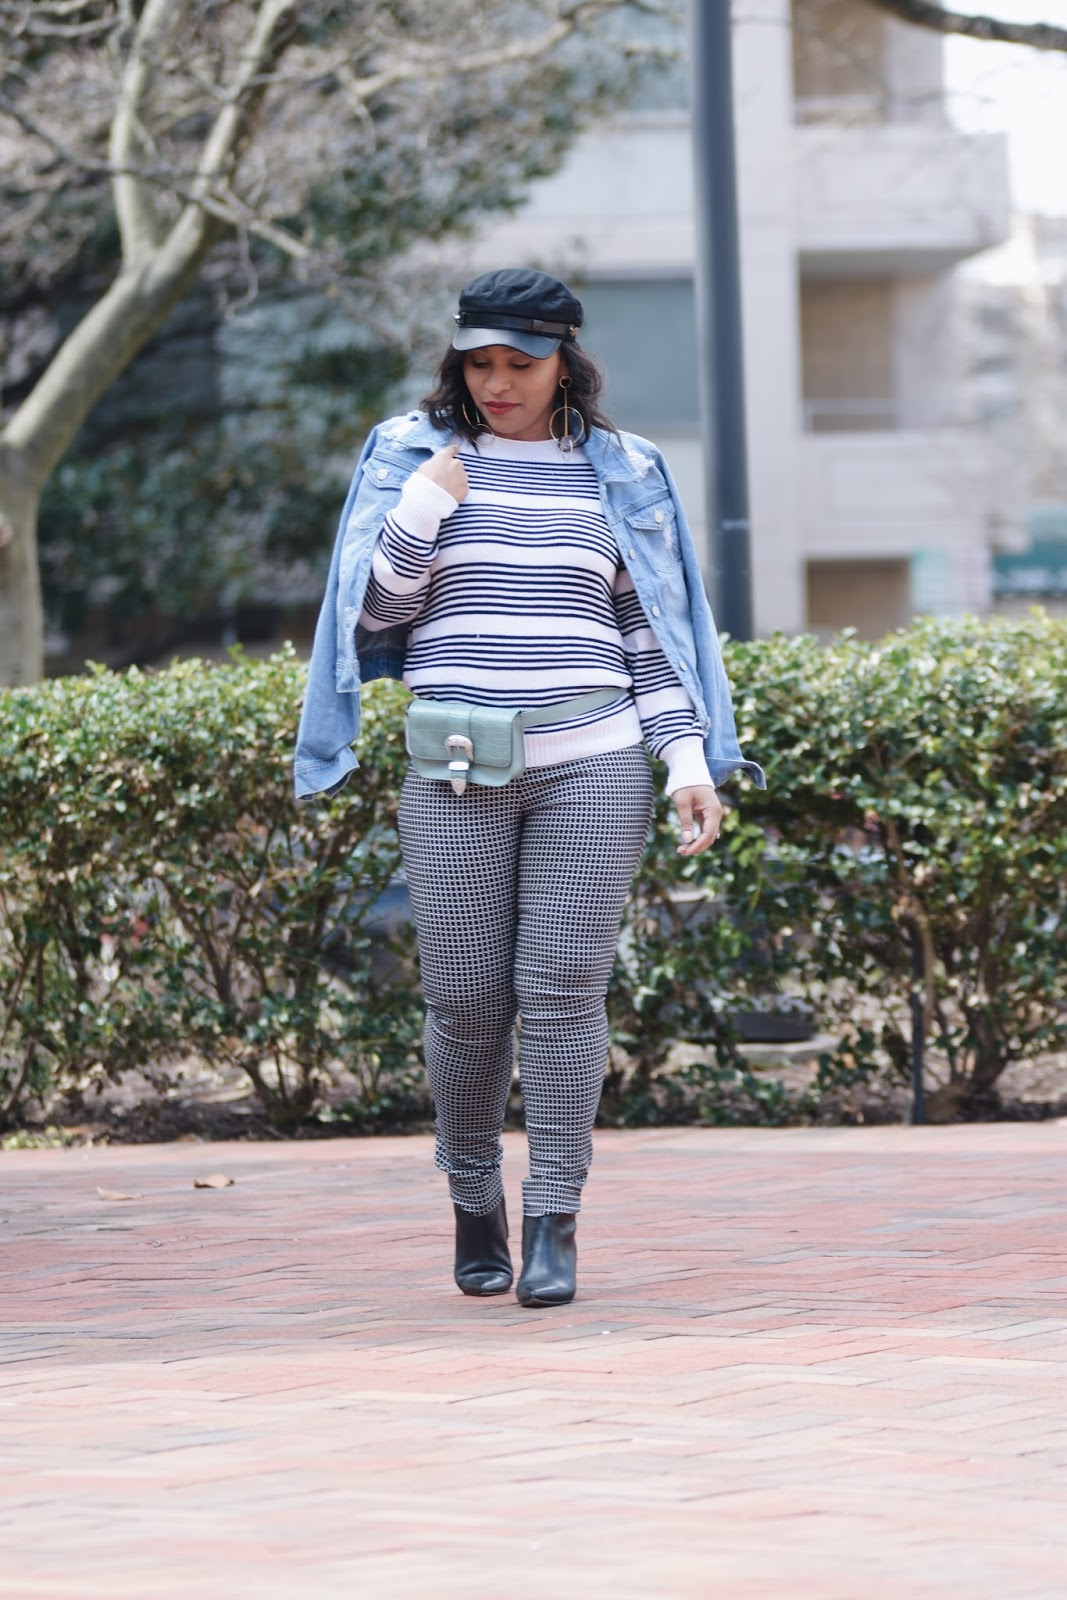 Belt bag trend, belt bag, fashion styles, mom blogger, style the bump, thredup, spring styles